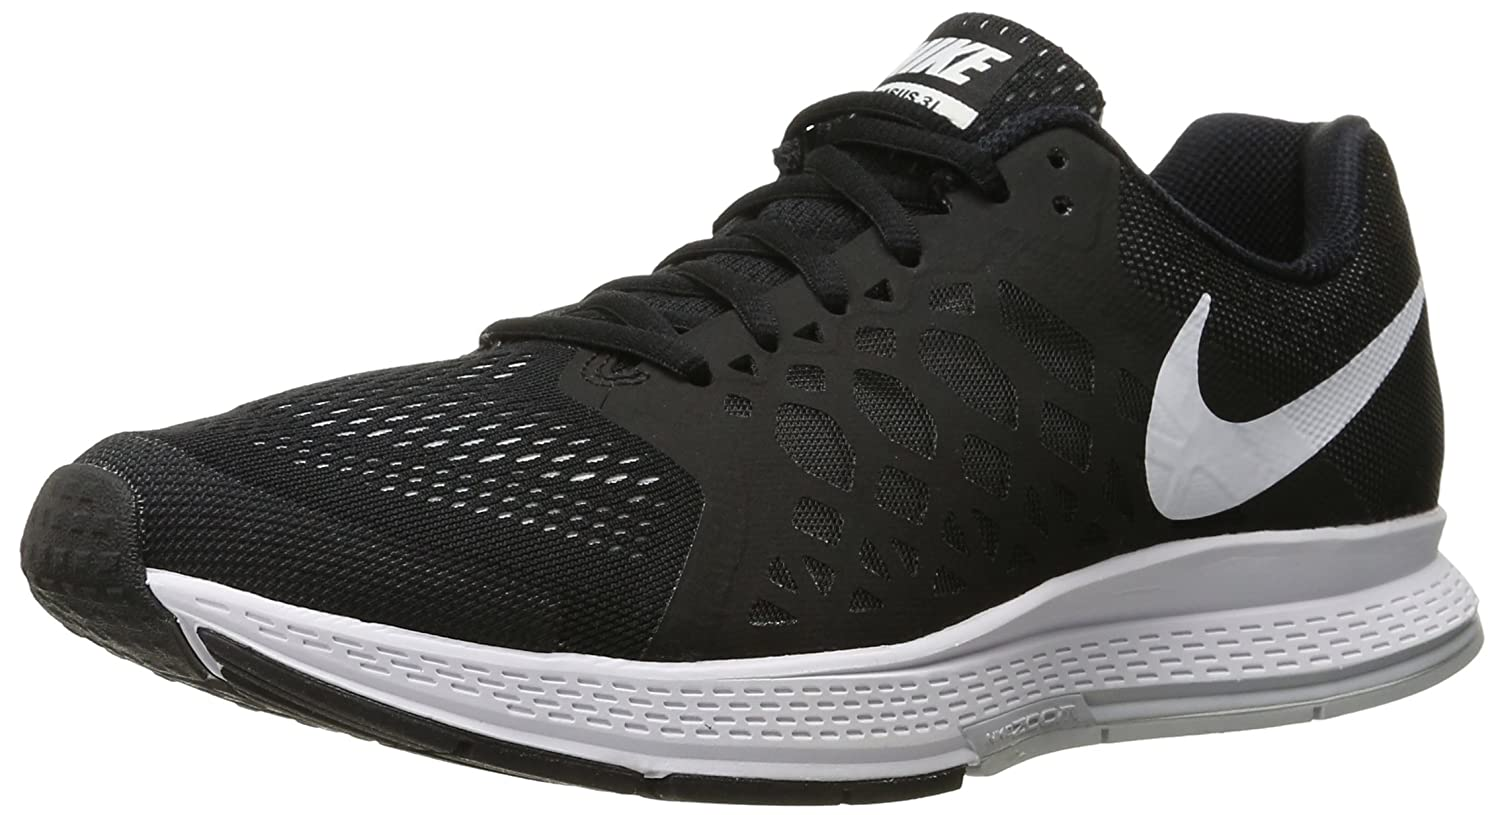 hot sale online aefc4 0cd3b Nike Men s Zoom Pegasus 31 Black, White Running Shoes -7 UK India (41 EU)(8  US)  Buy Online at Low Prices in India - Amazon.in